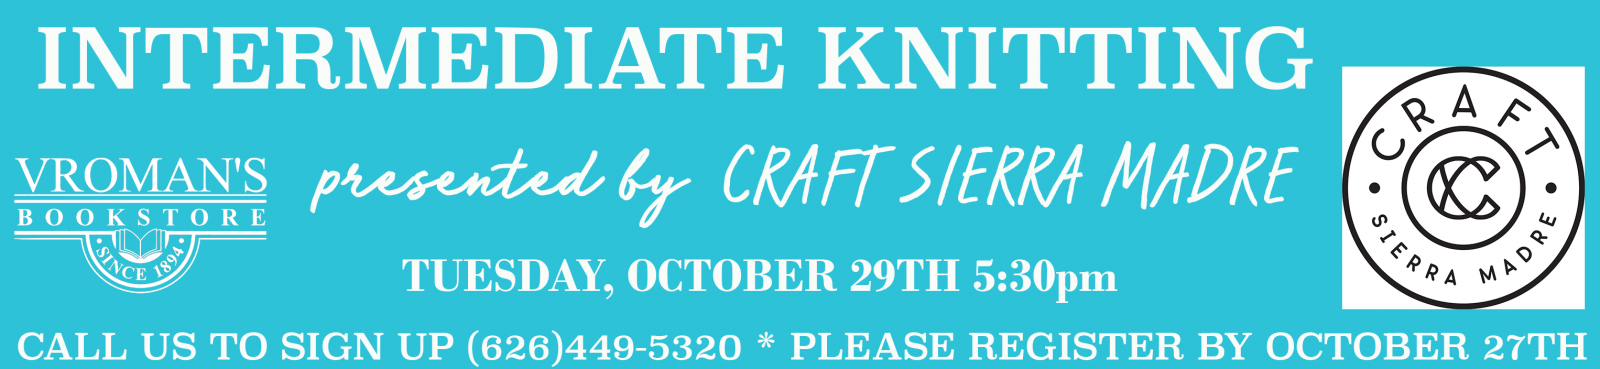 Intermediate Knitting Workshop Tuesday October 29th at 5:30pm